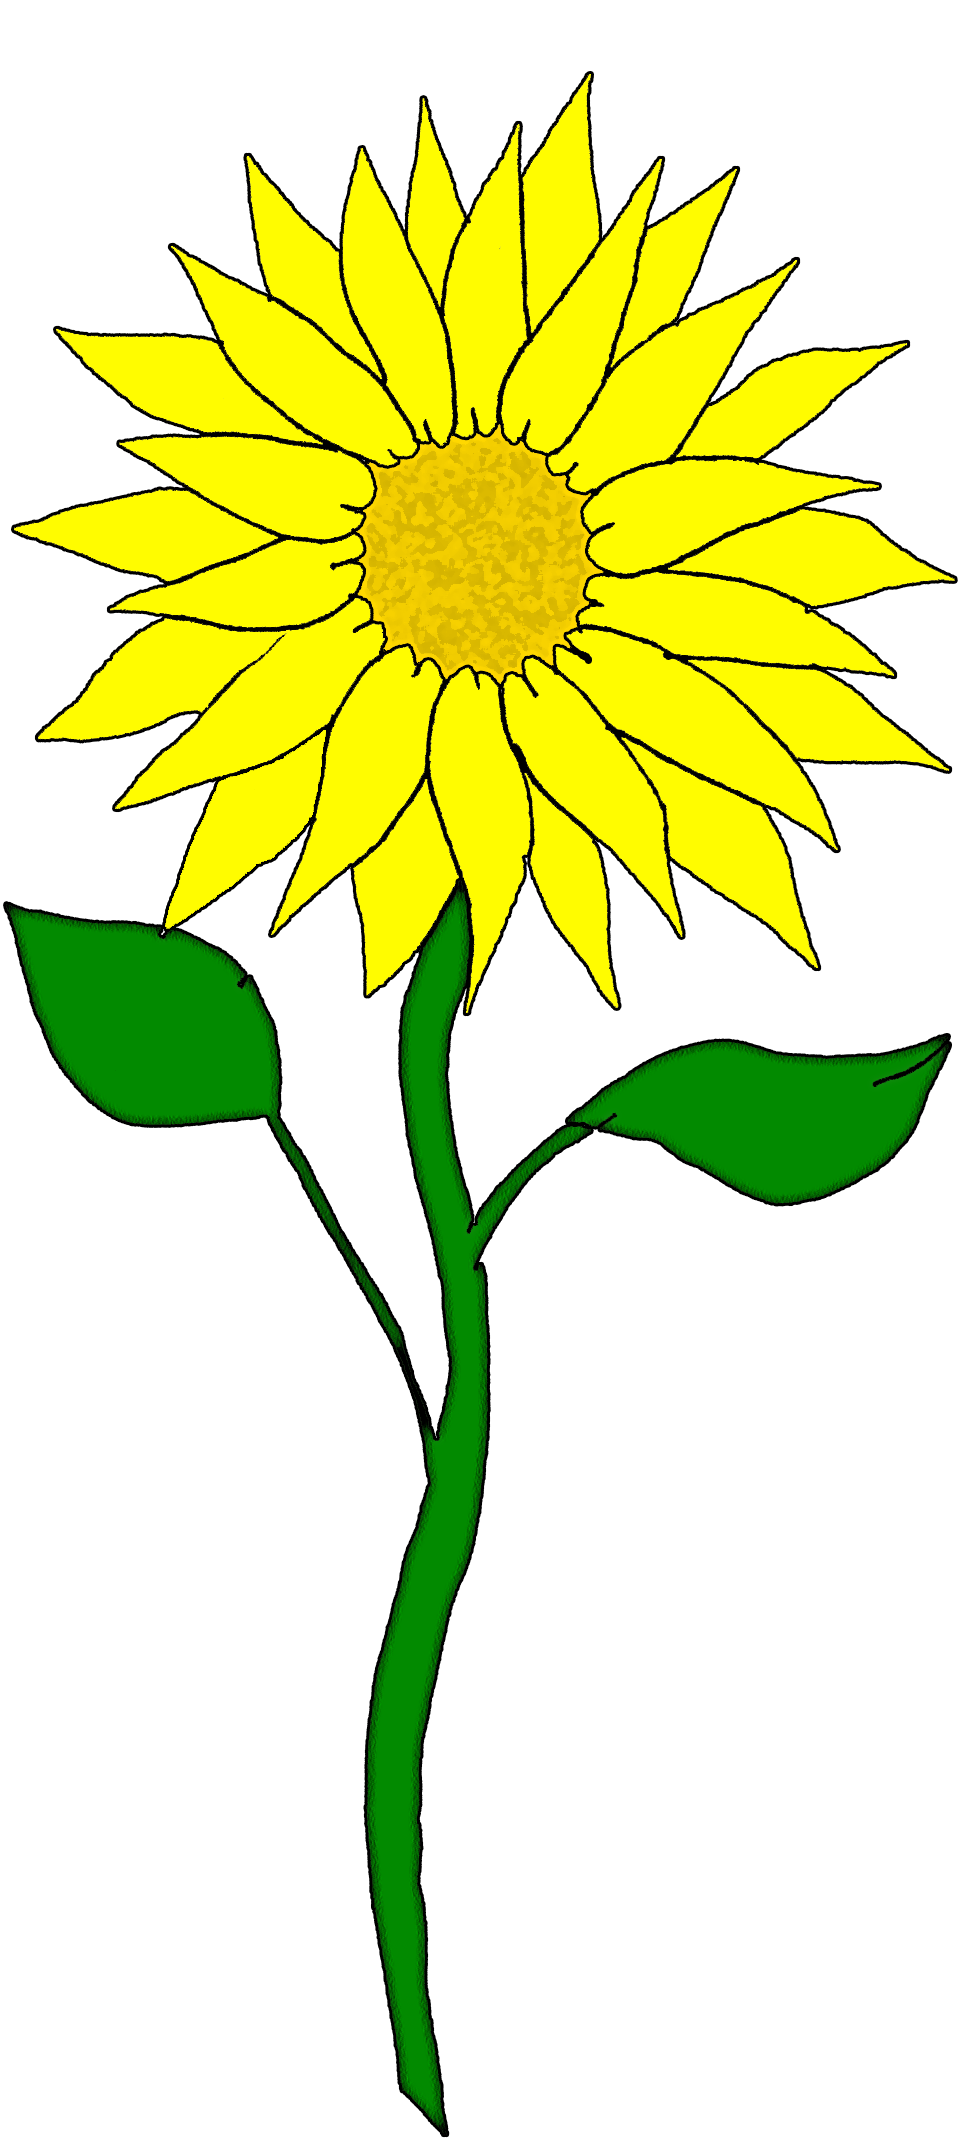 Sunflower border clipart free images